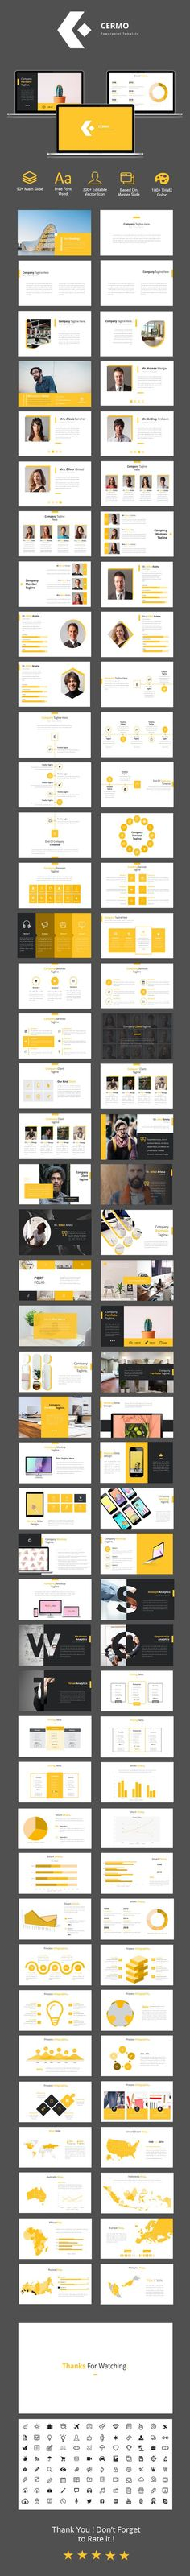 Buy Cermo - Powerpoint Template by UJ-Stilus on GraphicRiver. Cermo – Powerpoint Template Features Total Slide Vector Icon Free Font Used Aspect Ratio Based On Maste. Keynote Design, Ppt Design, Brochure Design, Brochure Template, Layout Design, Graphic Design, Design Templates, Presentation Slides, Presentation Design